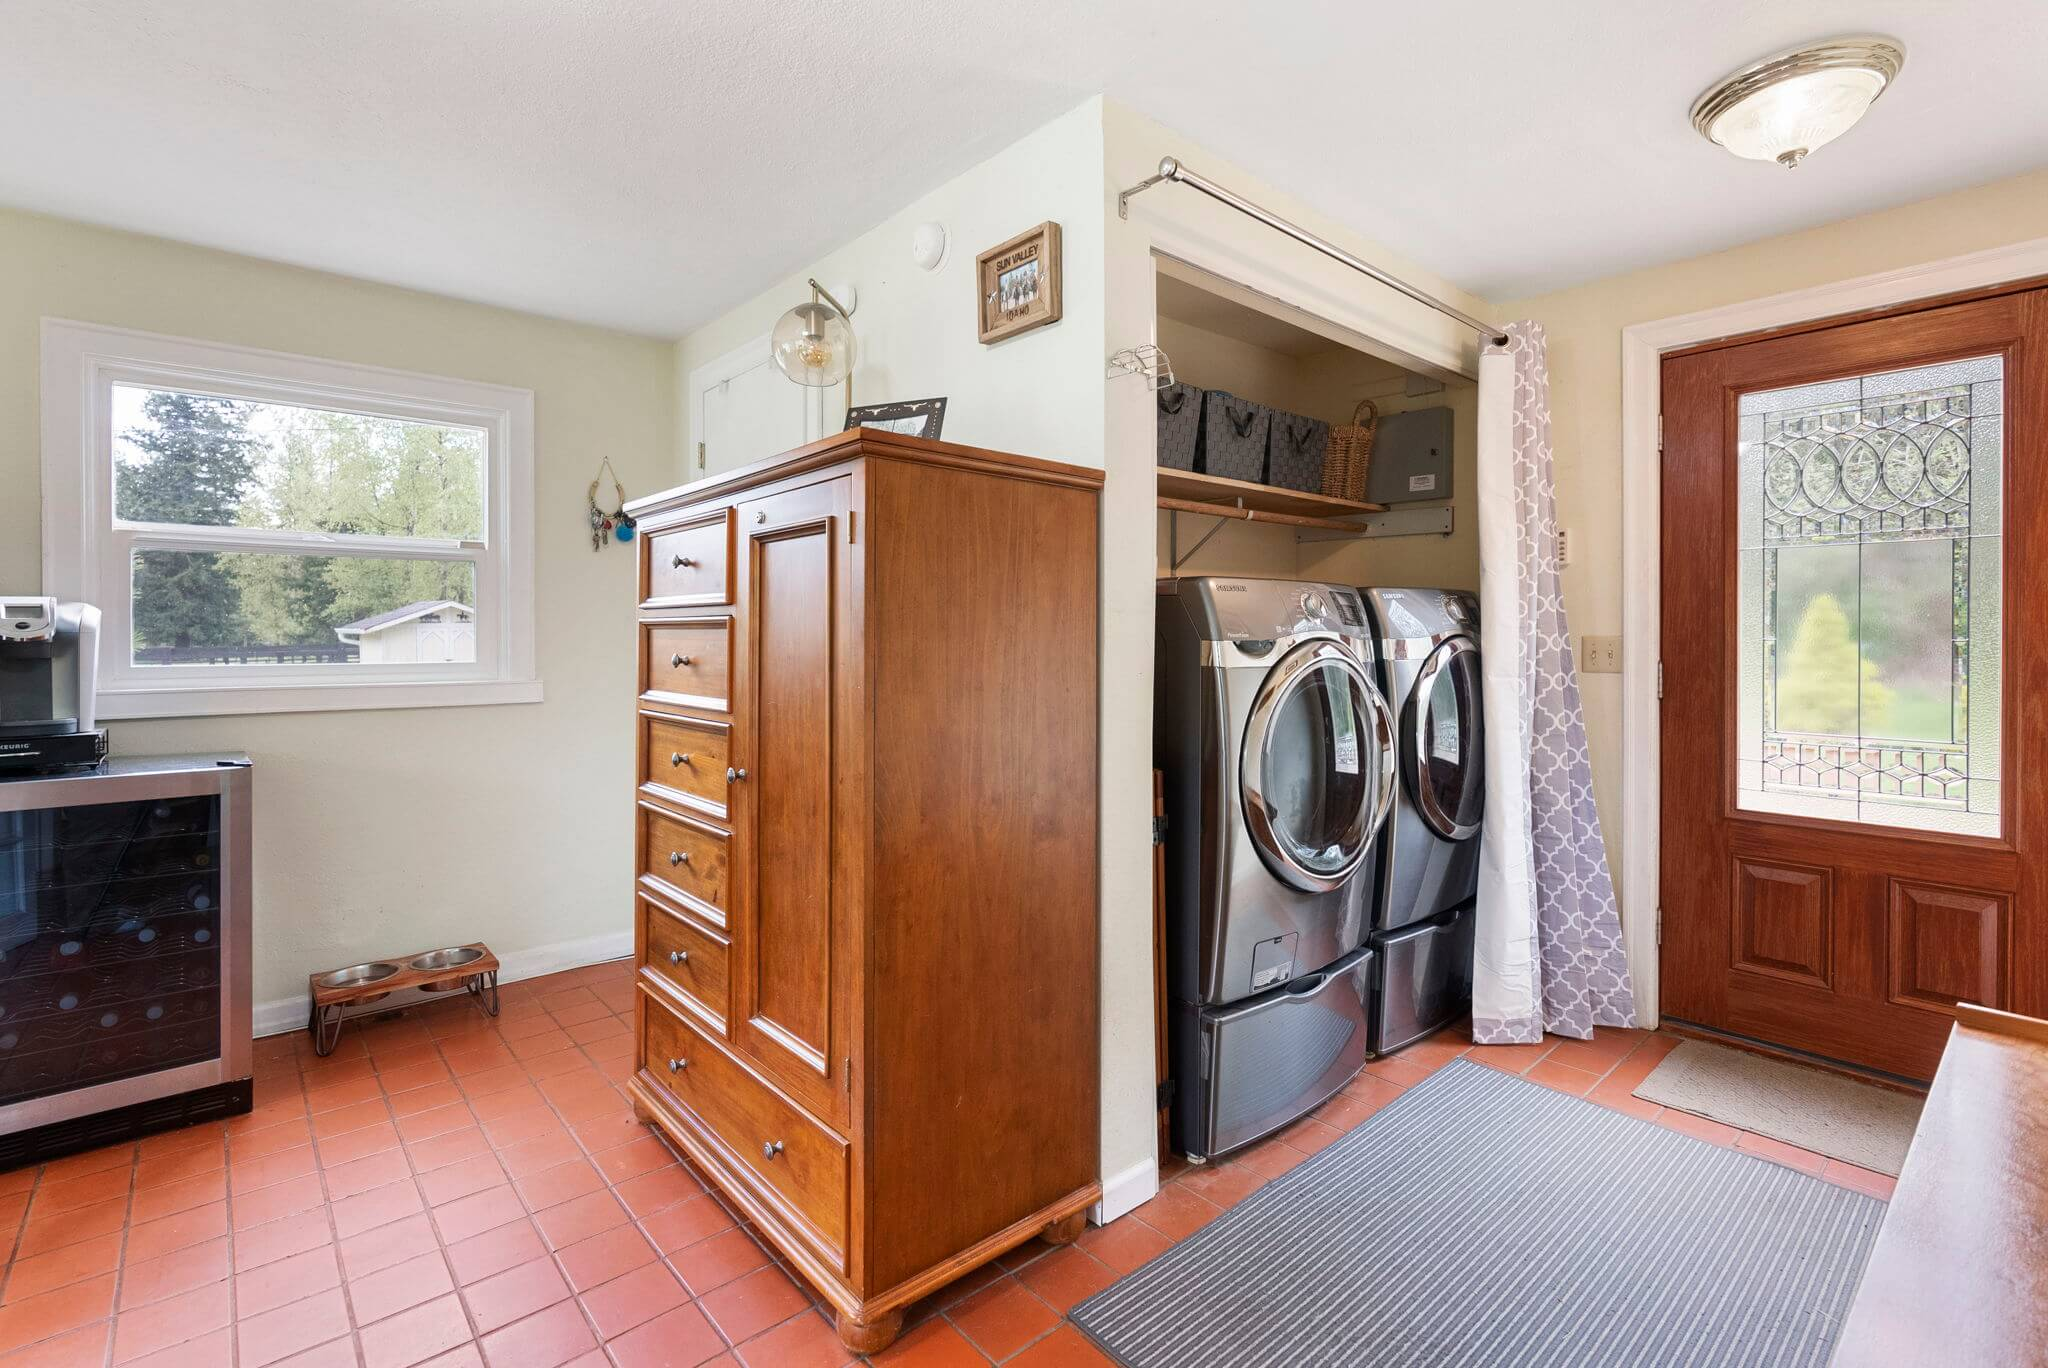 Home office includes a laundry area and door to back deck